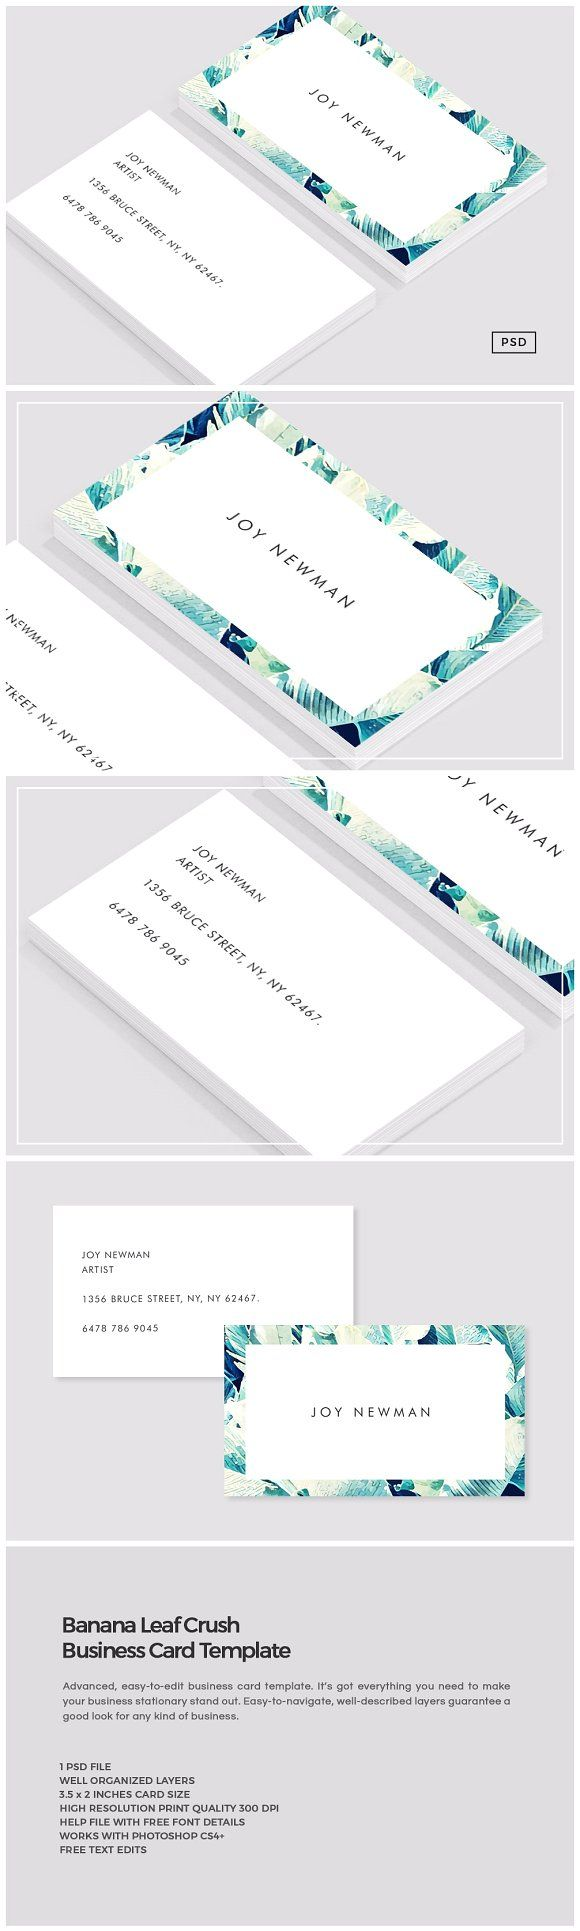 Banana Leaf Crush Business Card by The Design Label on ...